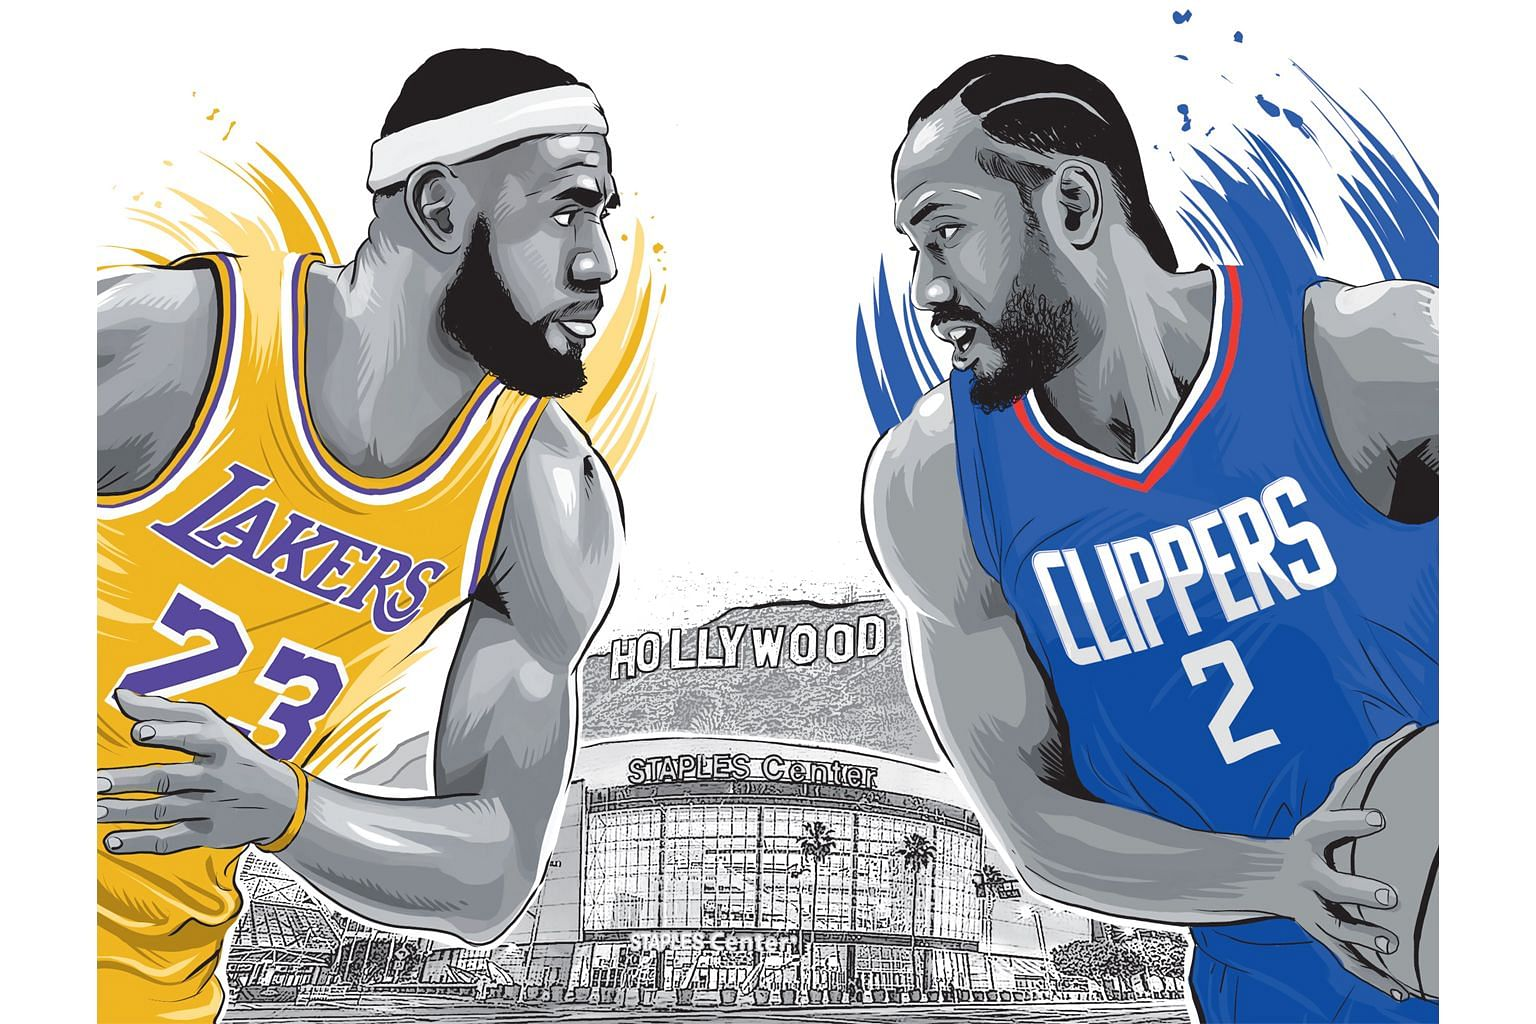 LeBron James and Kawhi Leonard will come face to face in tomorrow's National Basketball Association opening clash between LA Lakers and LA Clippers at the Staples Center in Los Angeles.